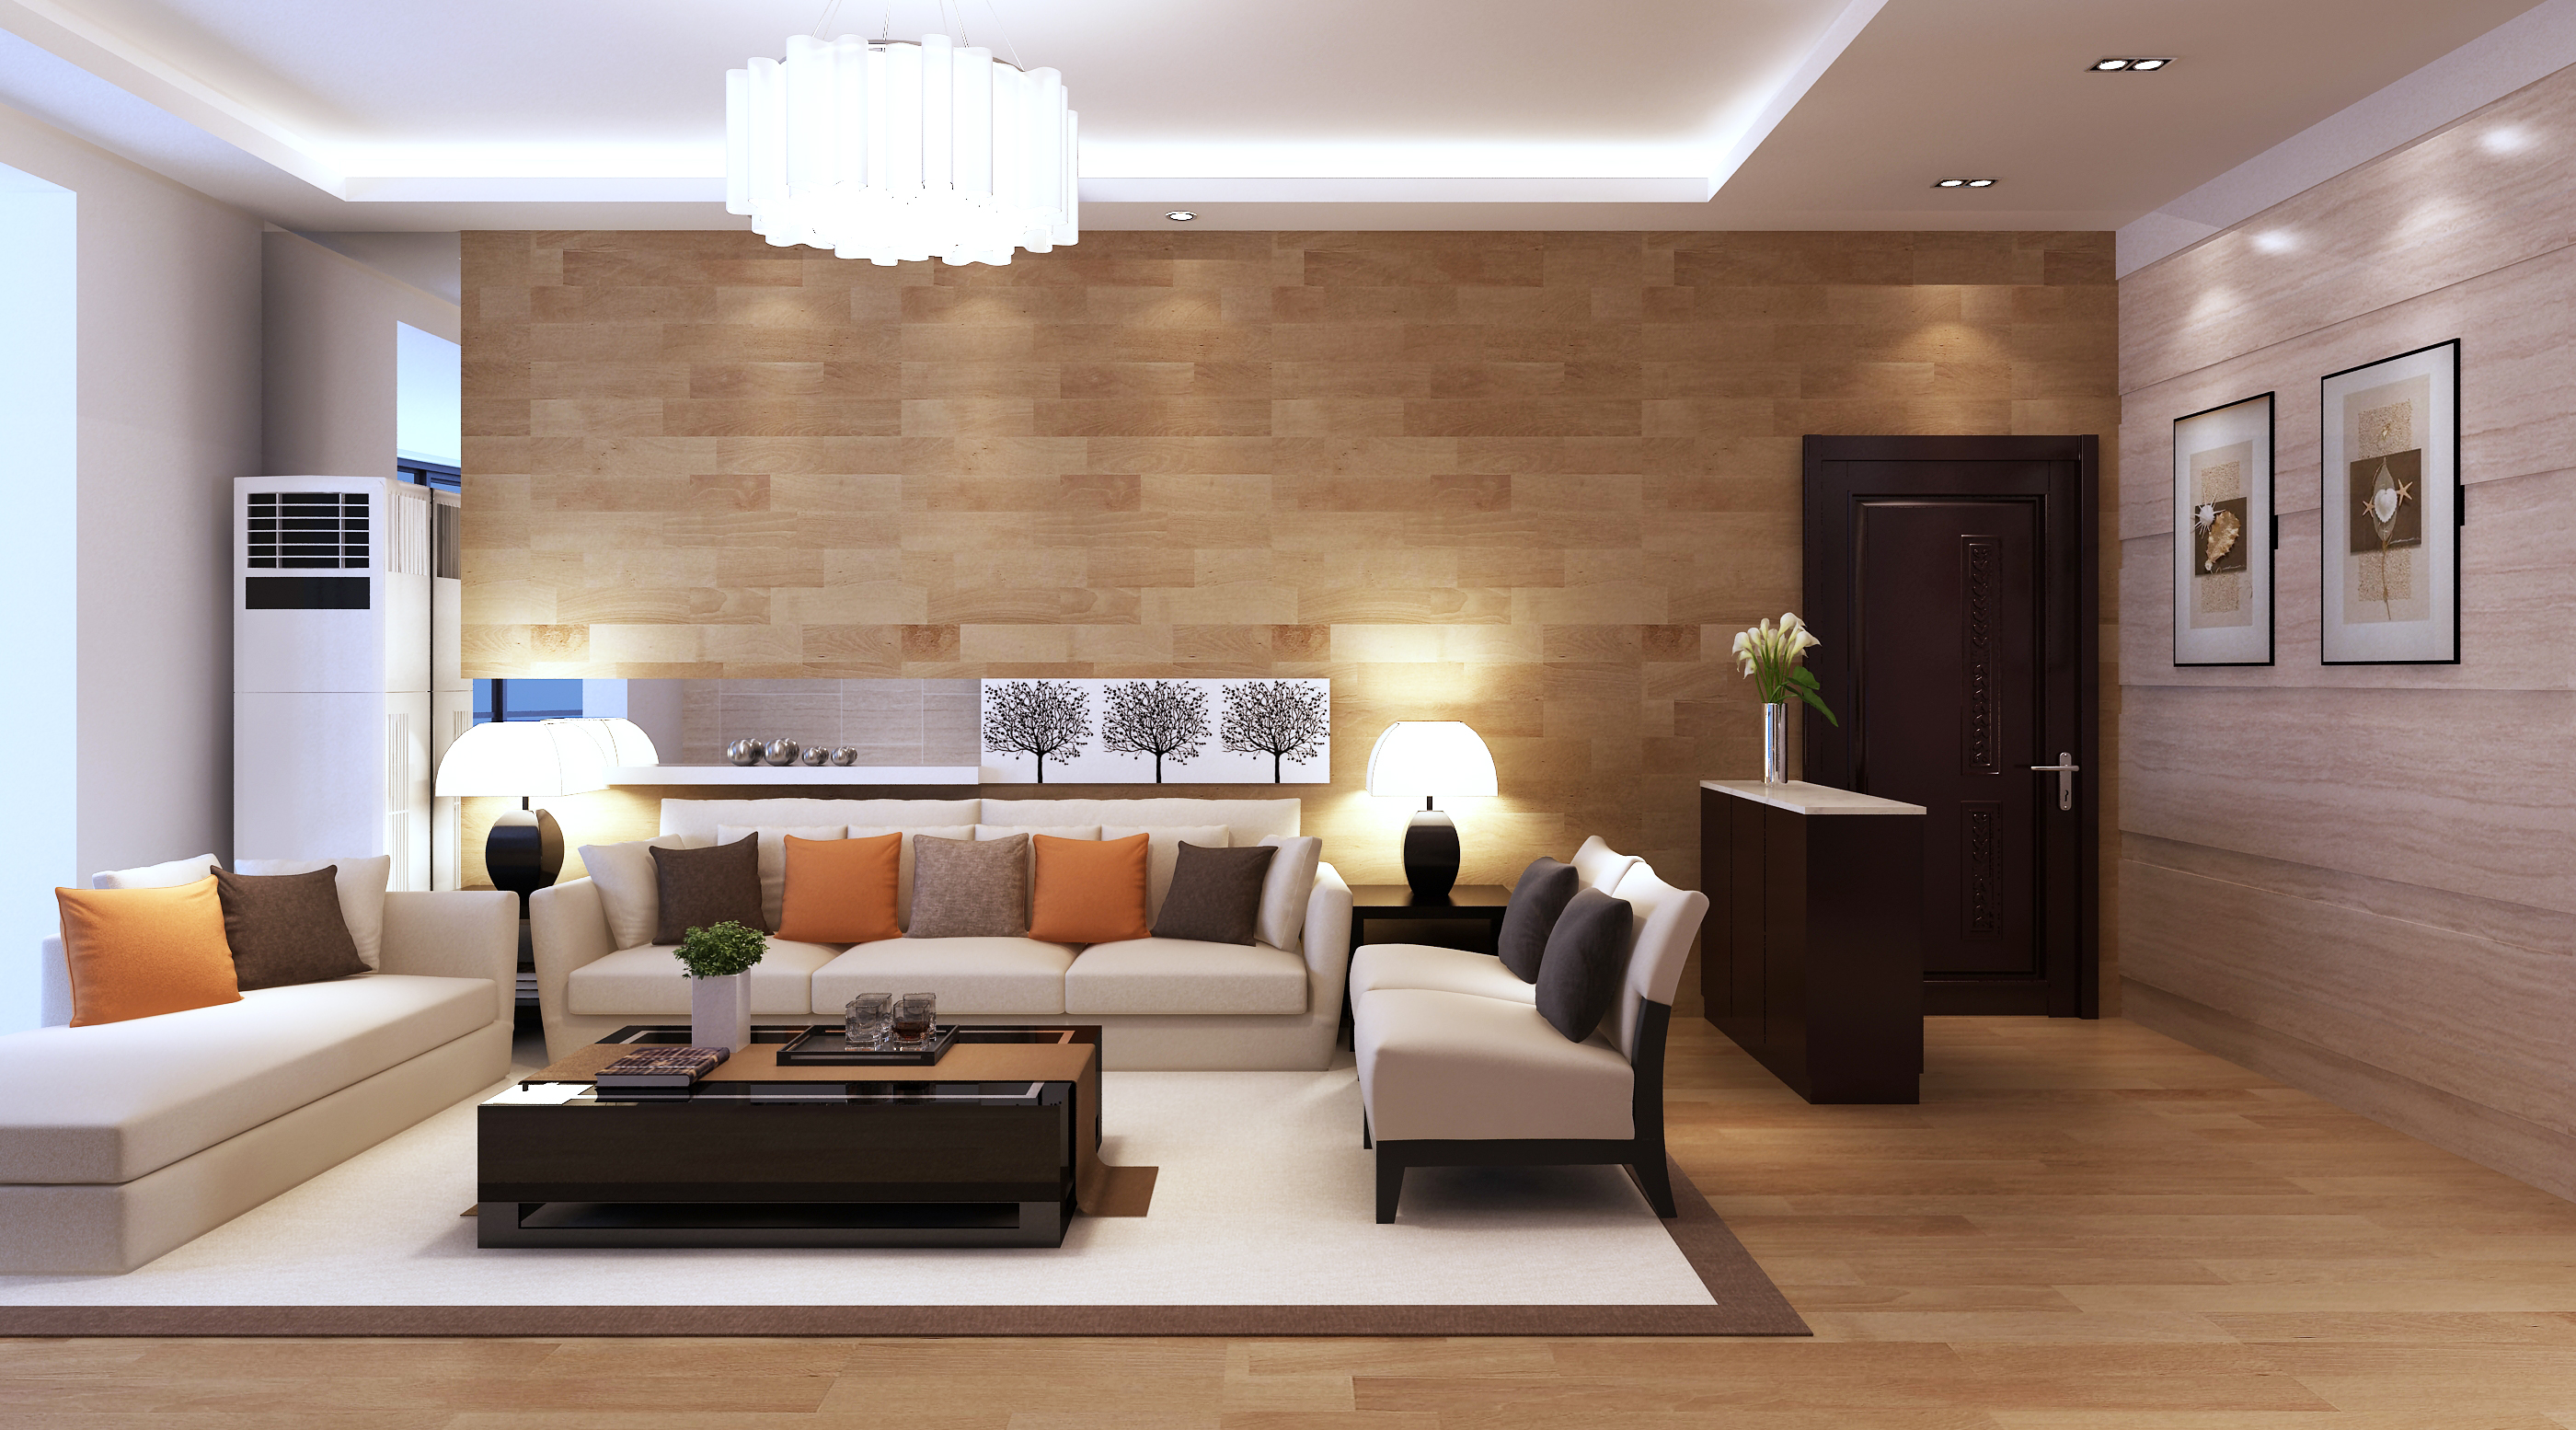 Apartment With Small Living Room Design | HomesFeed